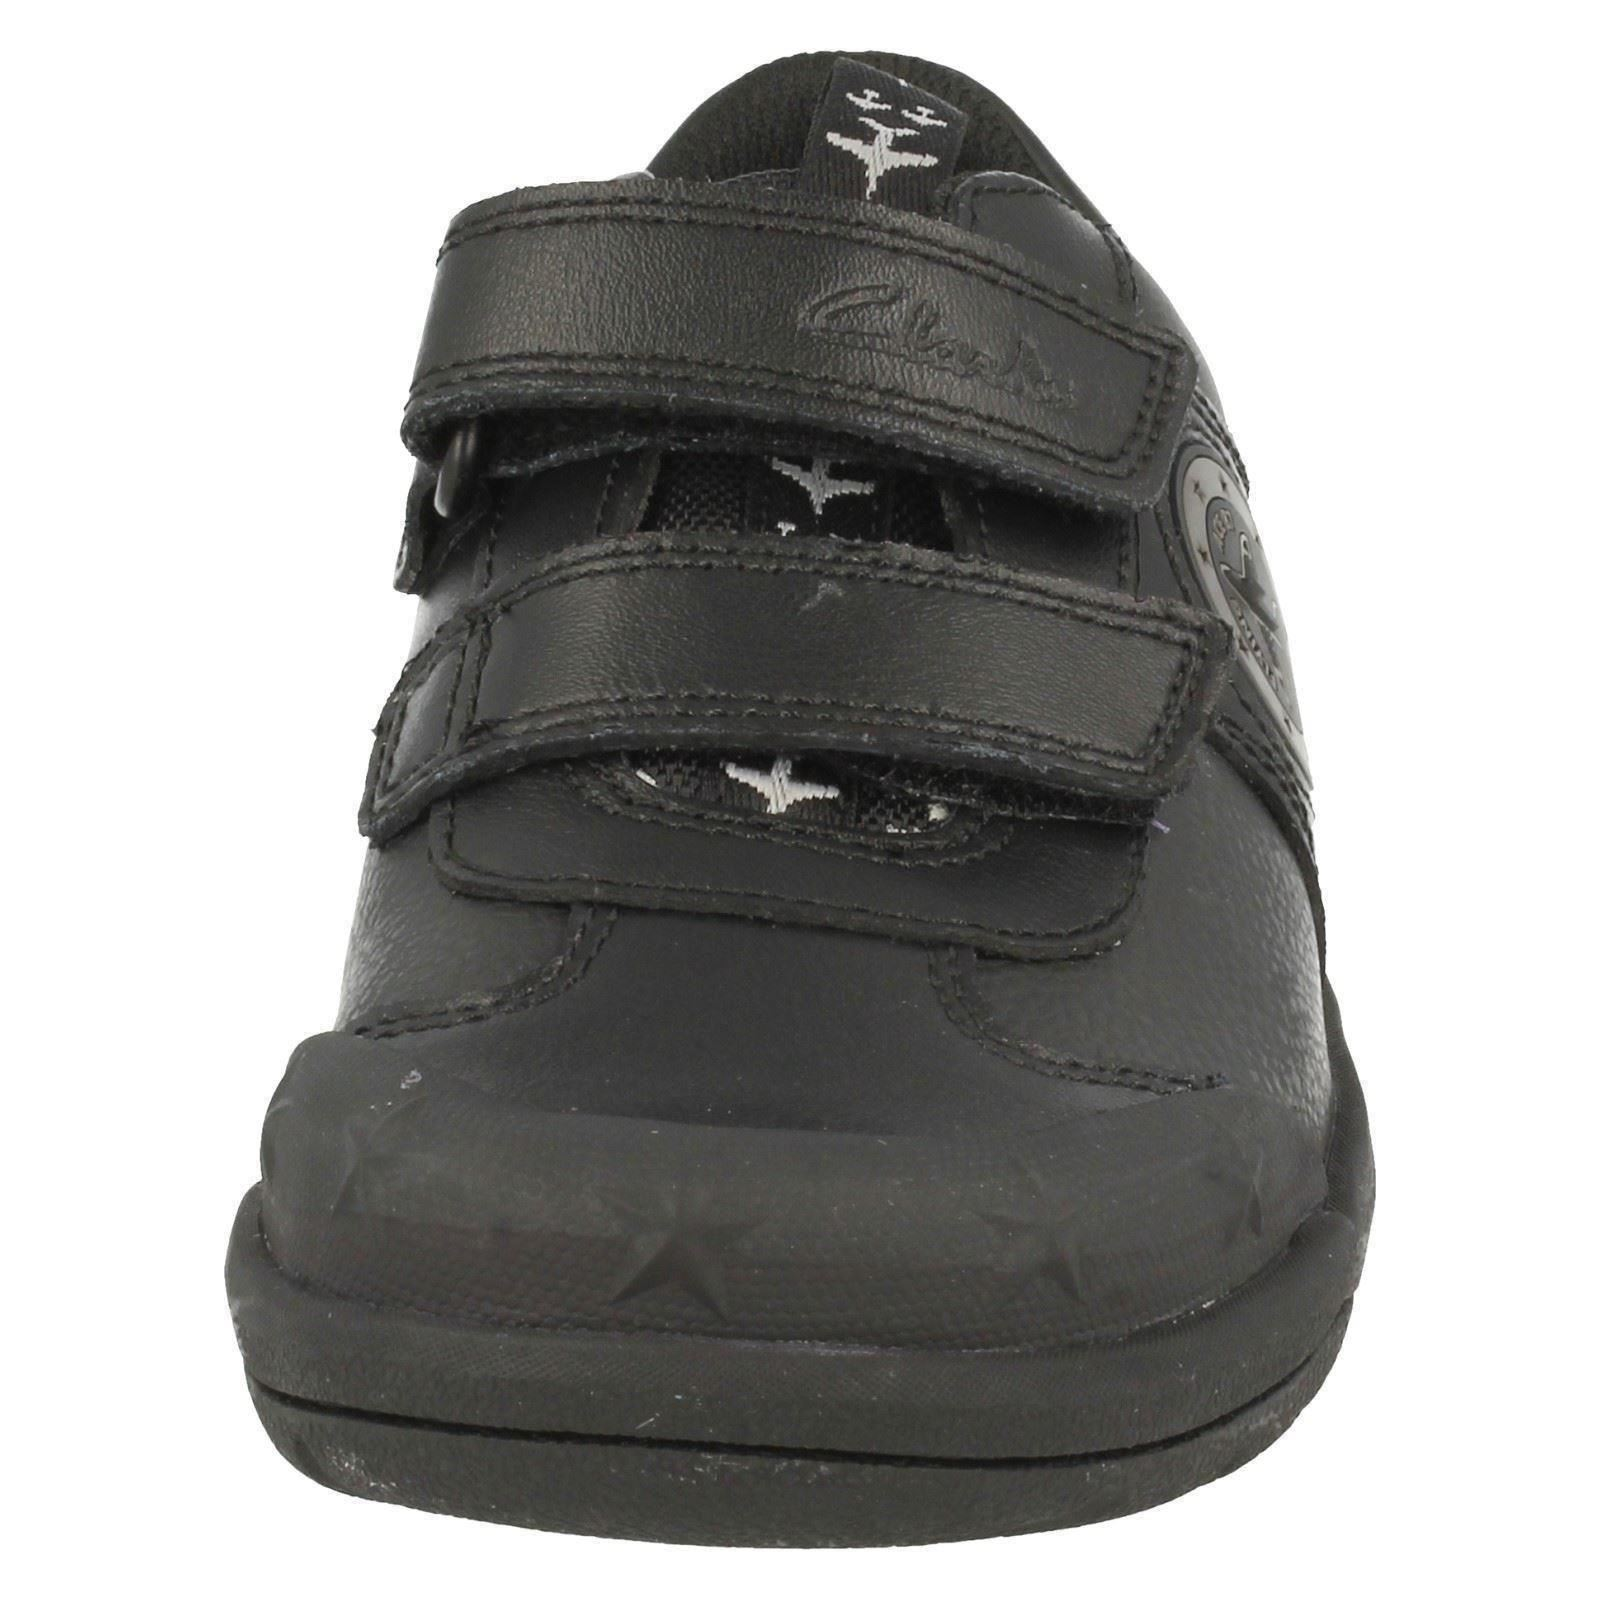 Boys Clarks Hook /& Loop Leather//Synthetic School Shoes with Lights Jetsky Fun